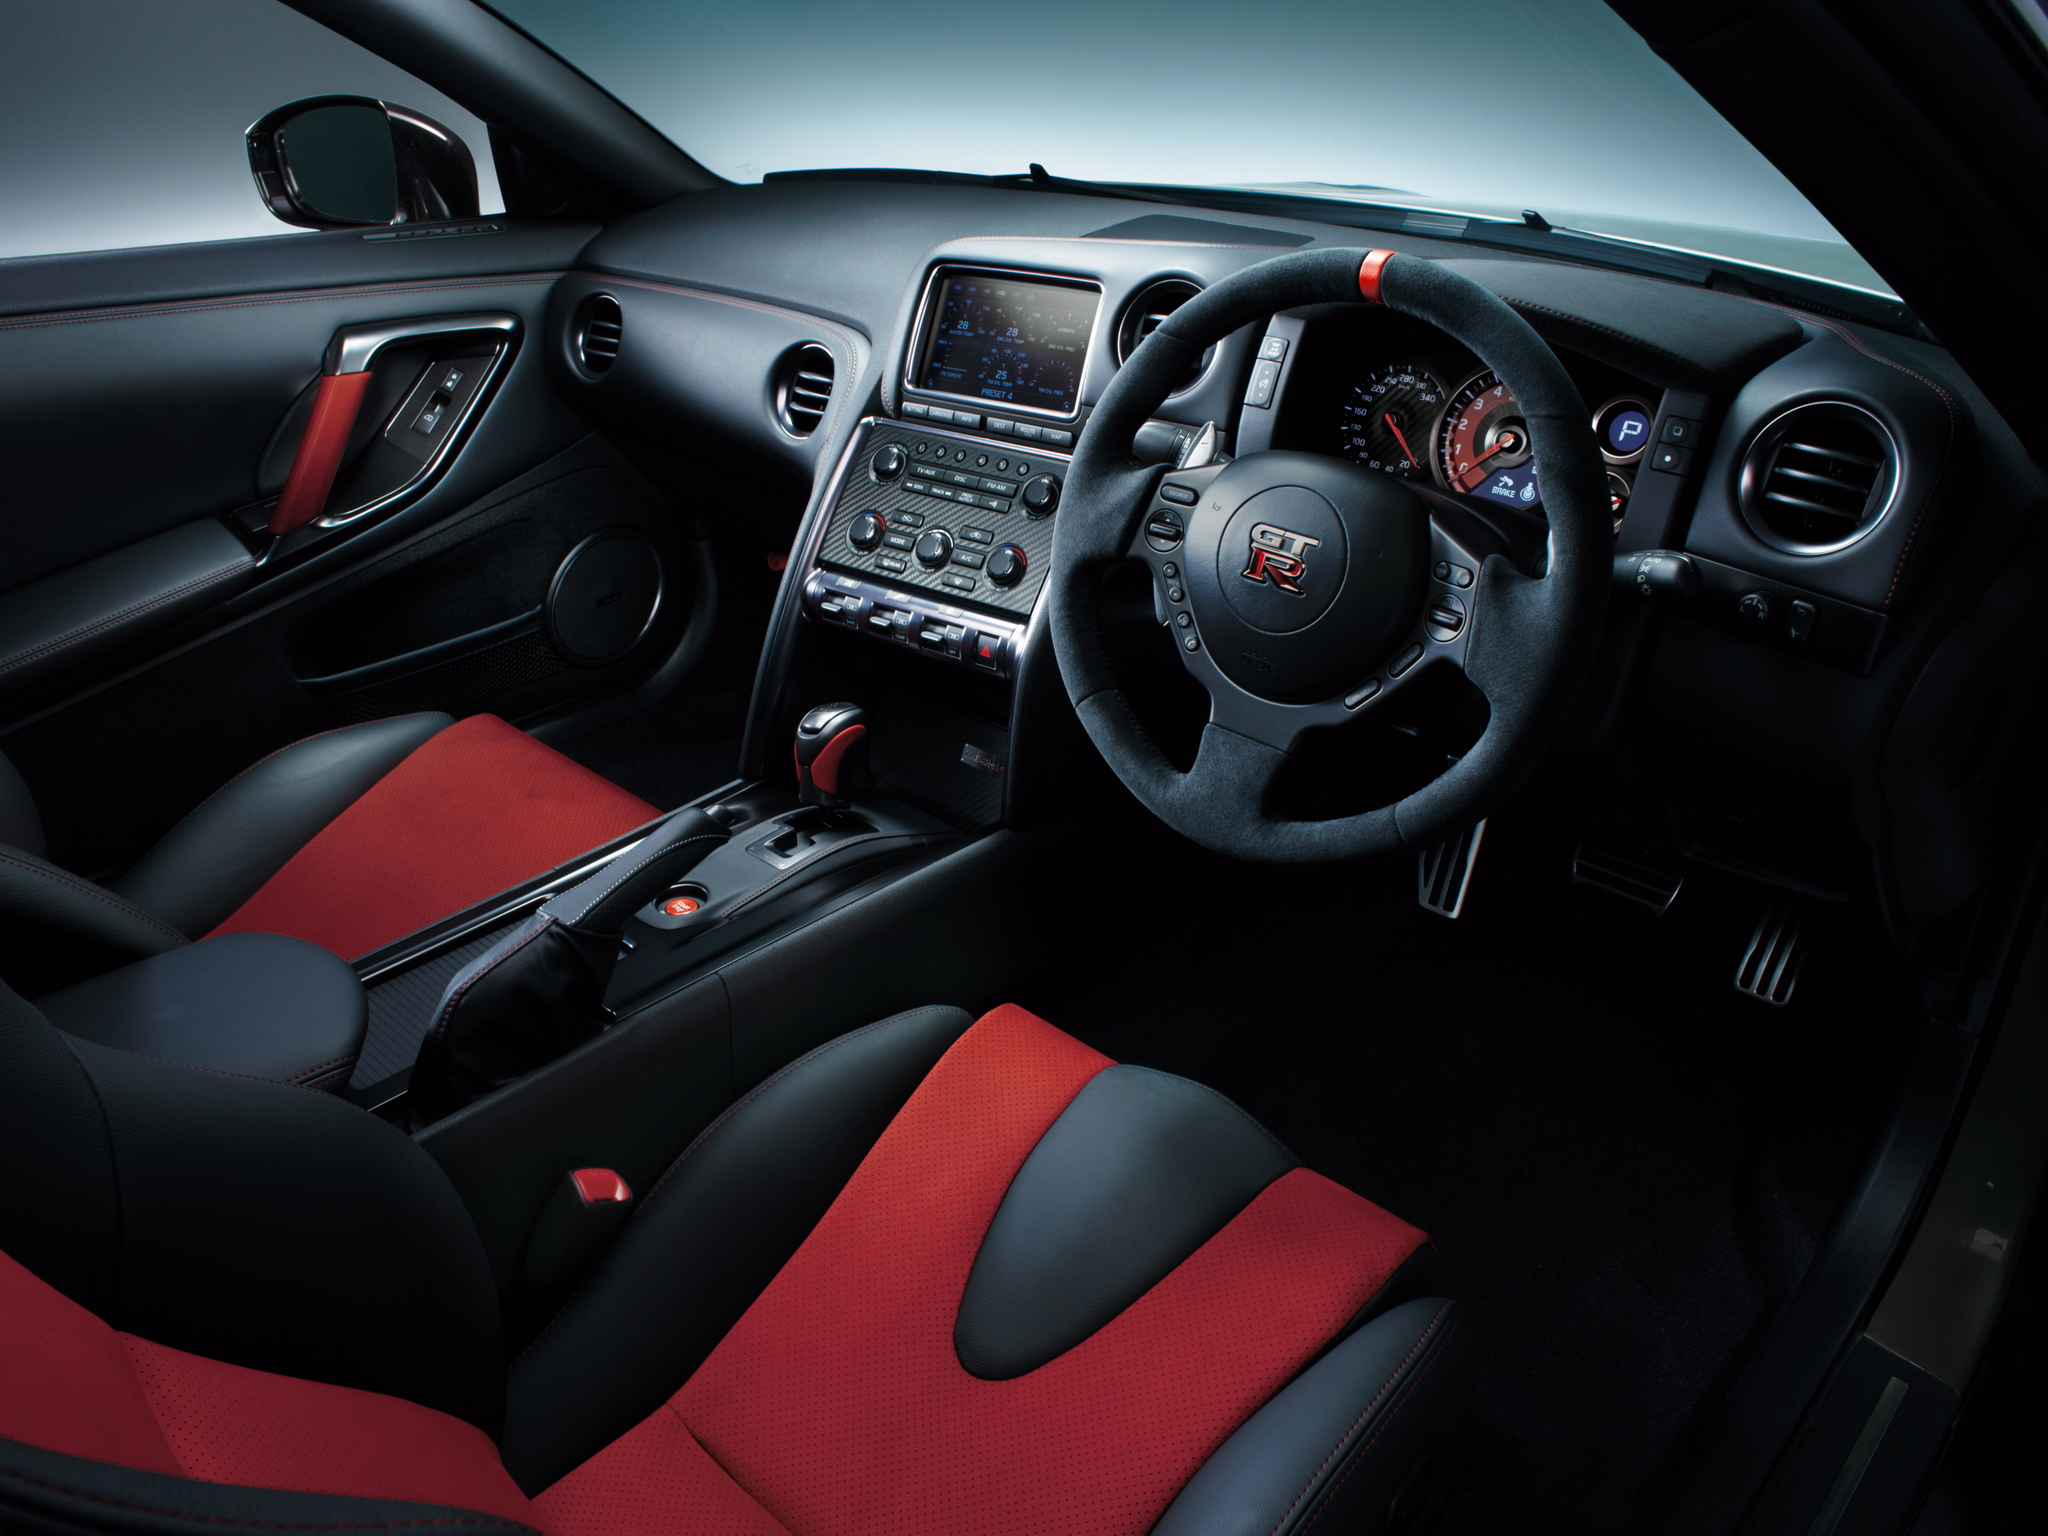 R35 Interior Wallpaper